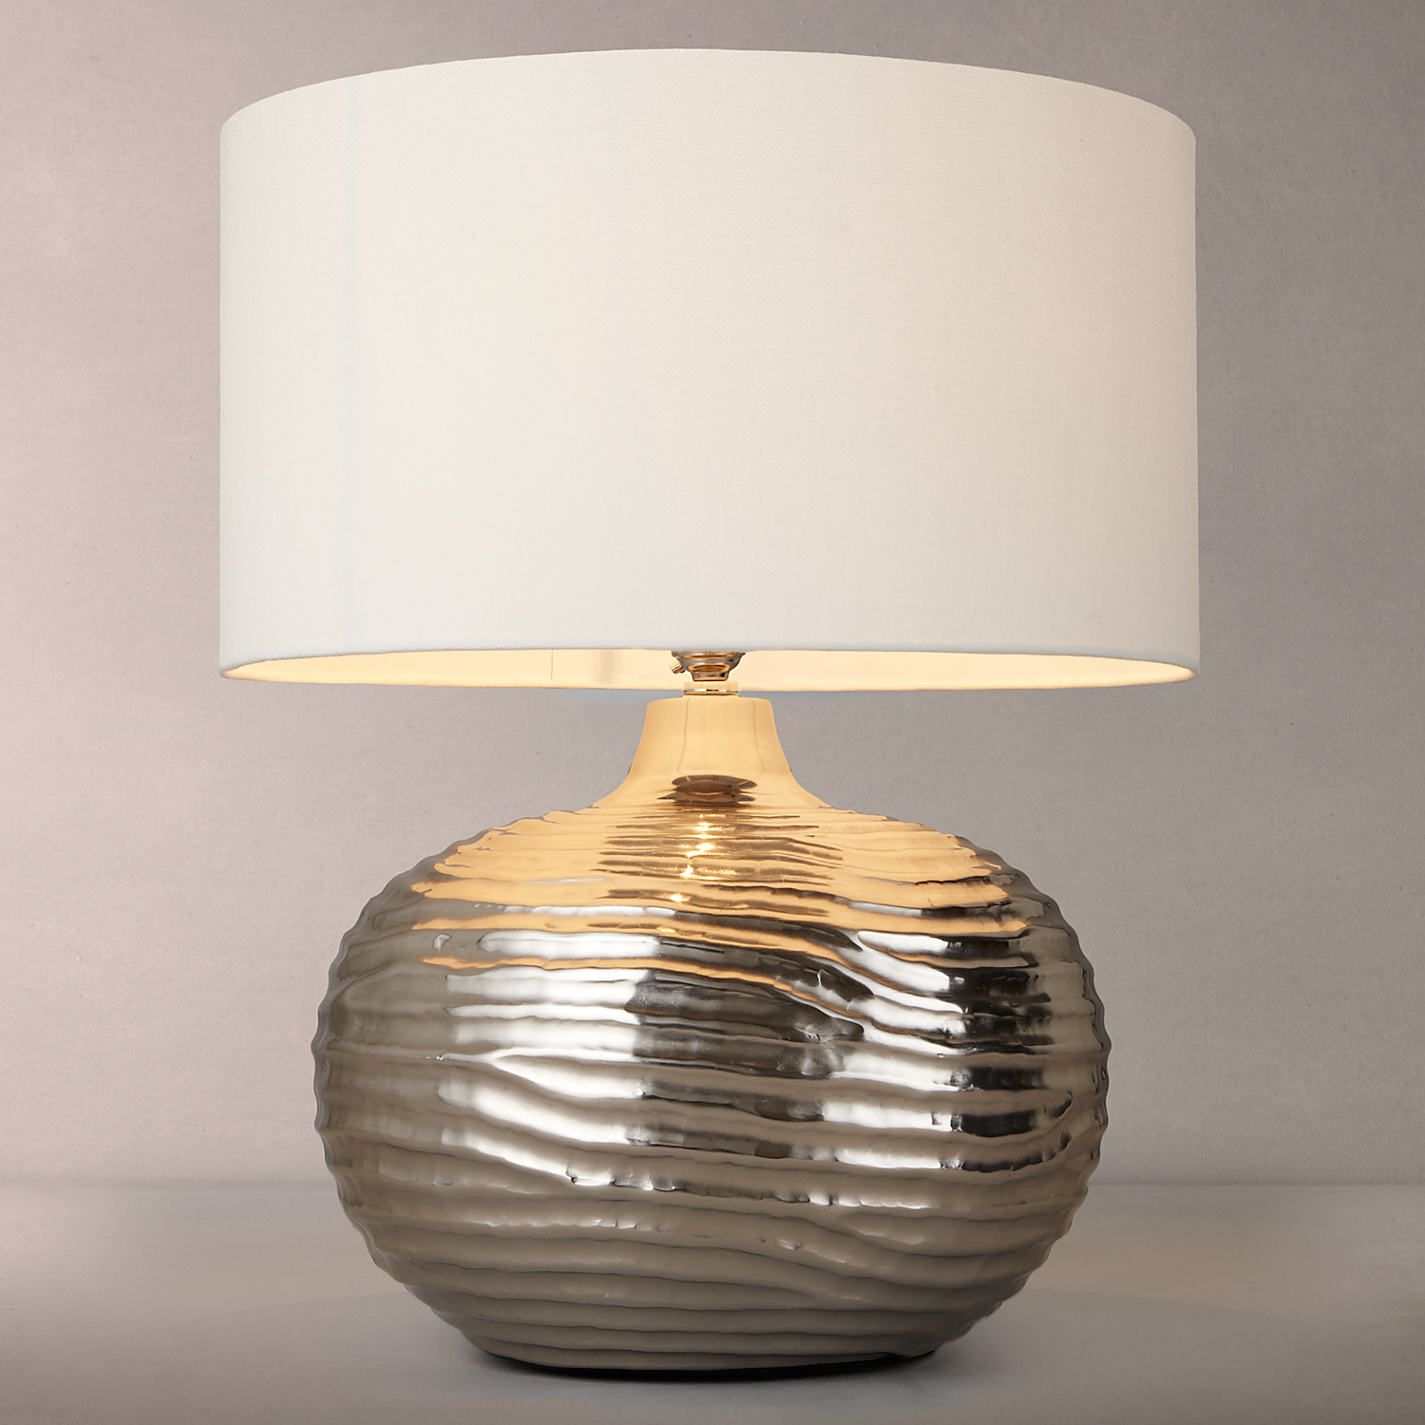 Buy john lewis ise waves metal table lamp from our view all table buy john lewis ise waves metal table lamp from our view all table lamps range at mozeypictures Image collections